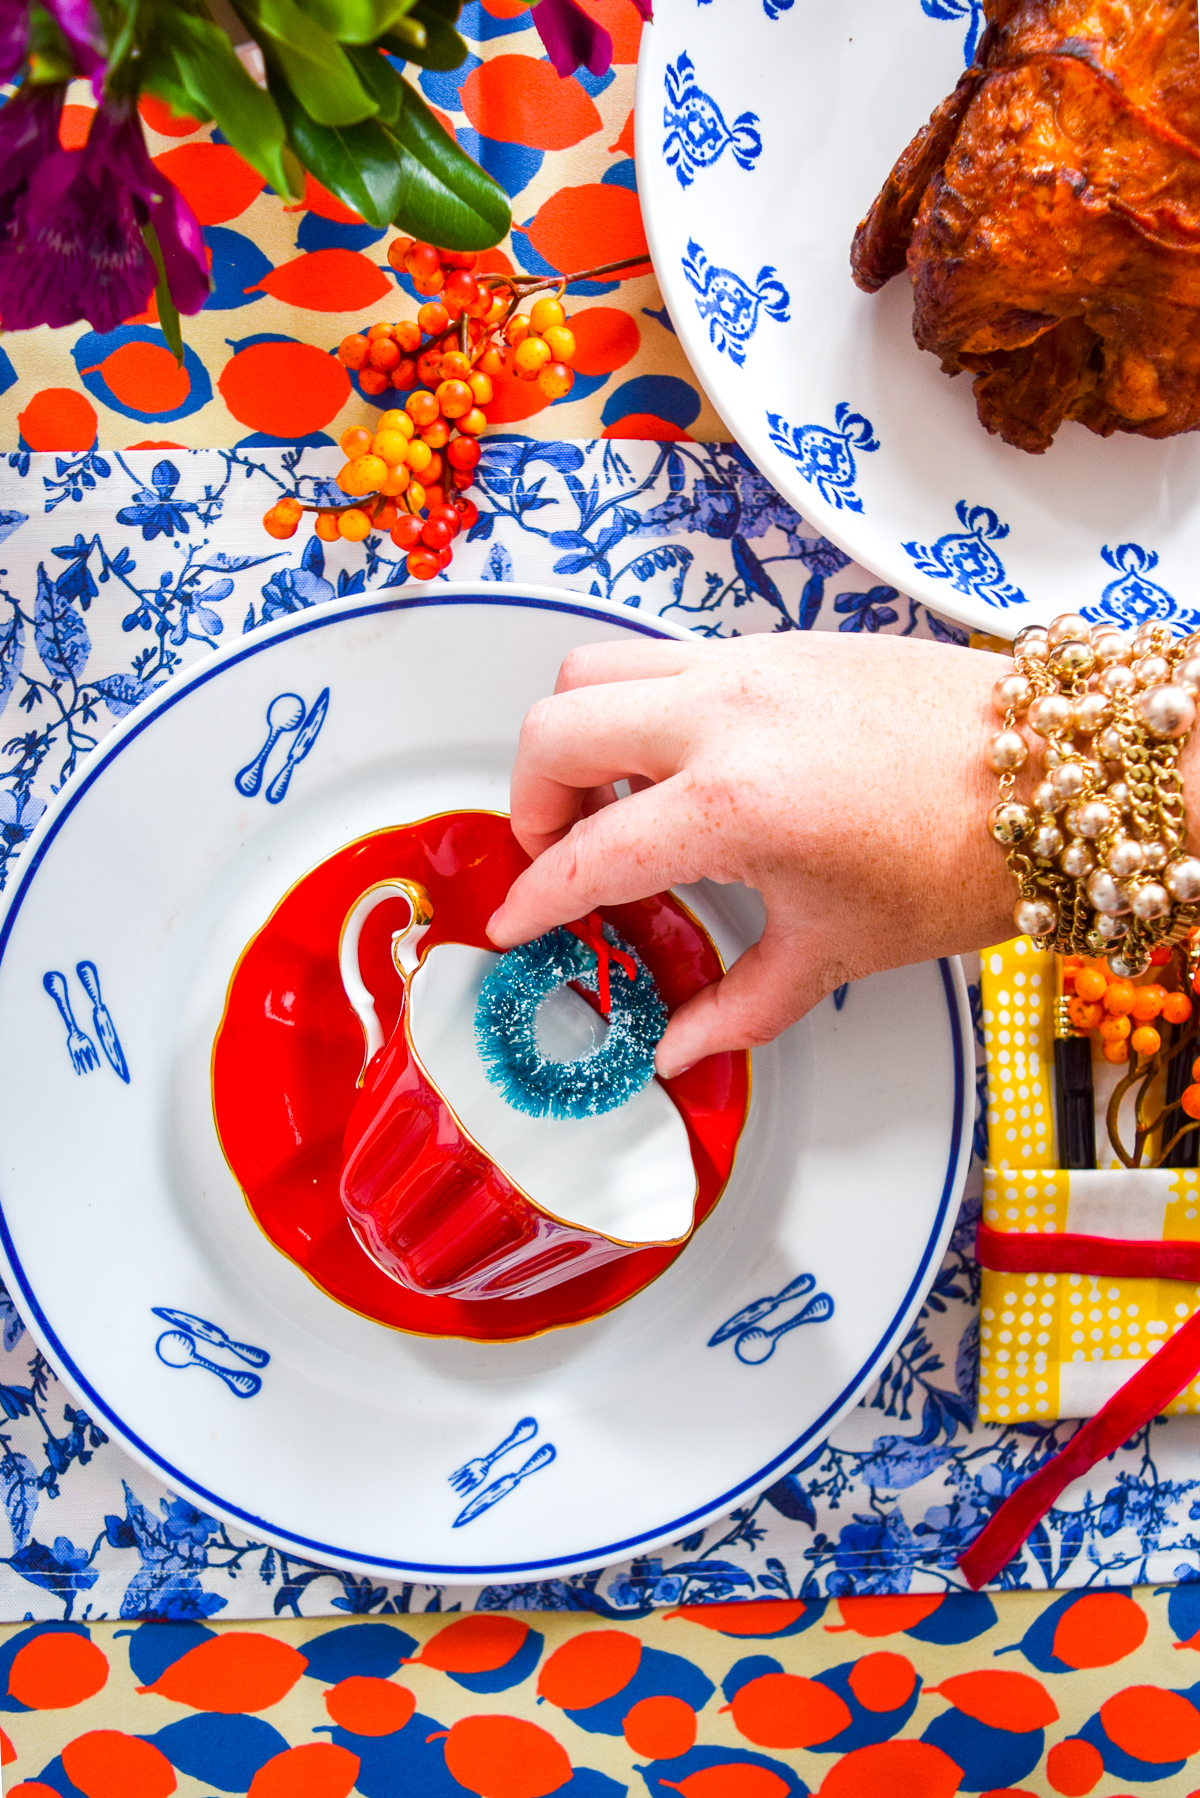 3 Bold Thanksgiving Place Setting Ideas to give you ALL the Thanksgiving & Christmas inspiration. Mix and match your existing china patterns, with fun and whimsical linens to create something fun and fresh! #thanksgiving #placesetting #tablescape